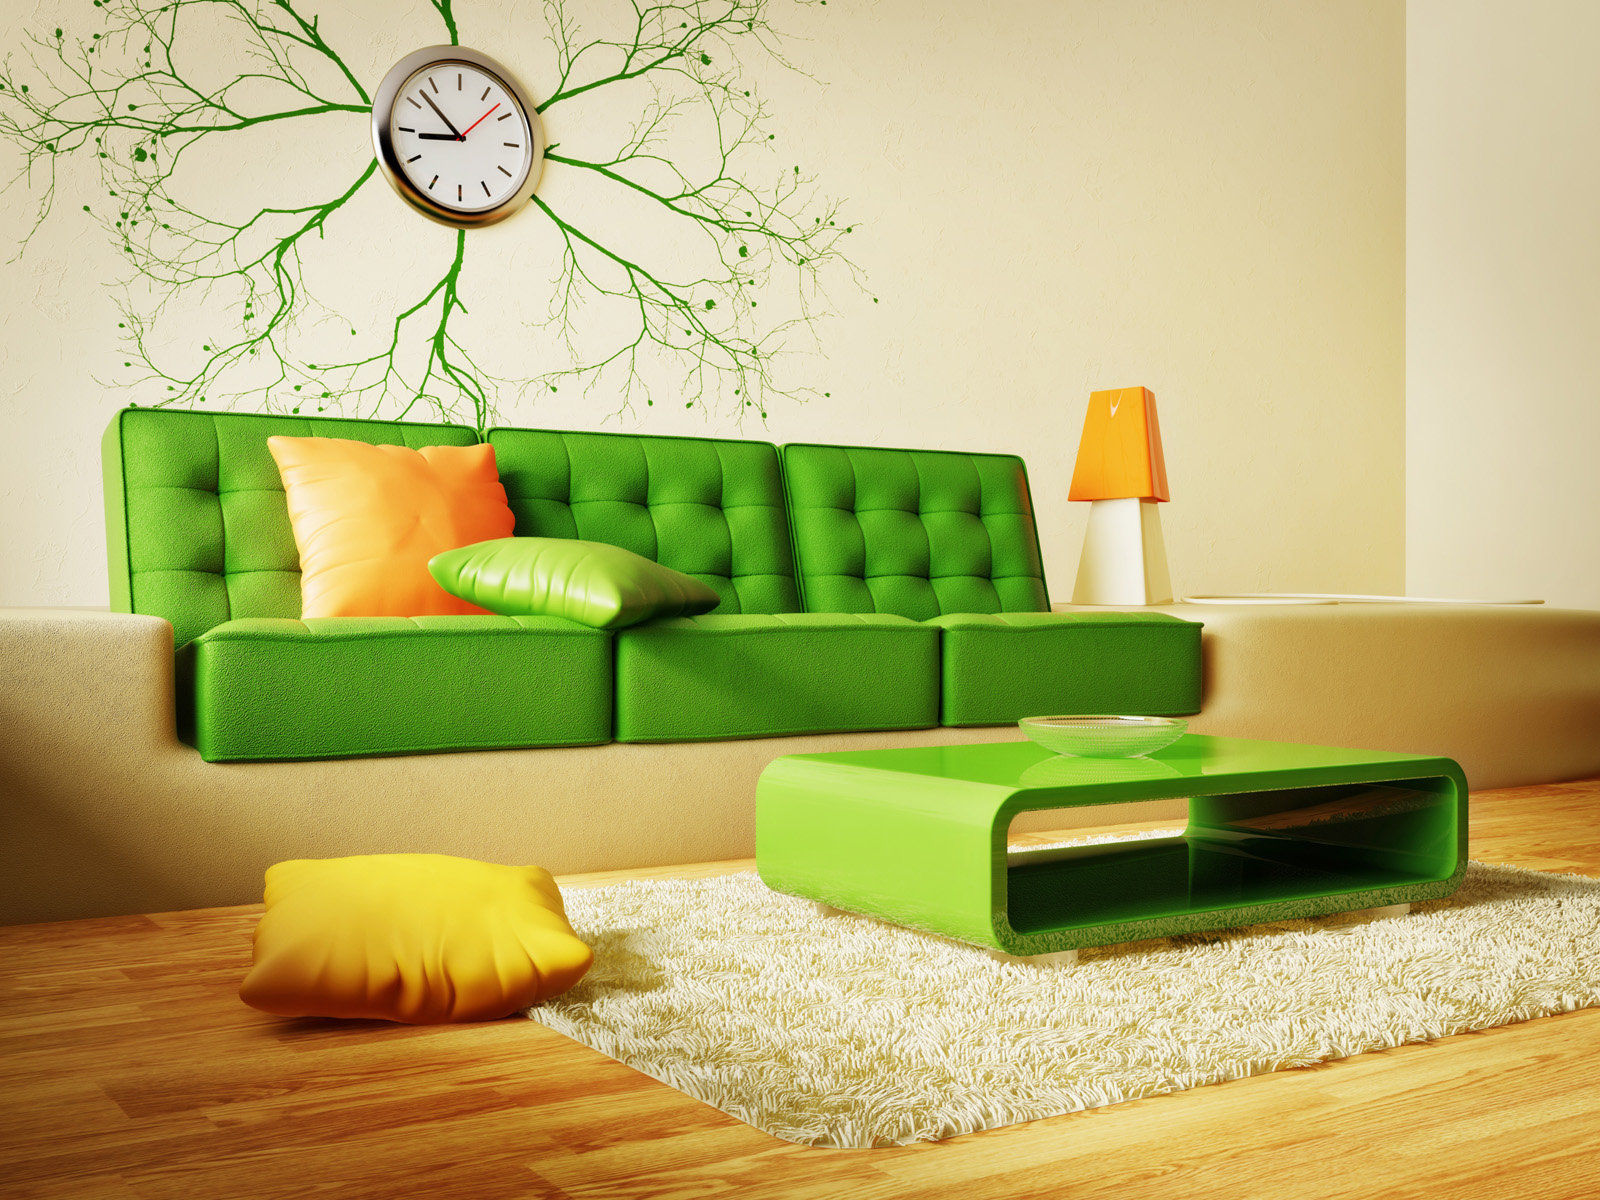 Sofa coffee table and wall clock wallpaper 51326